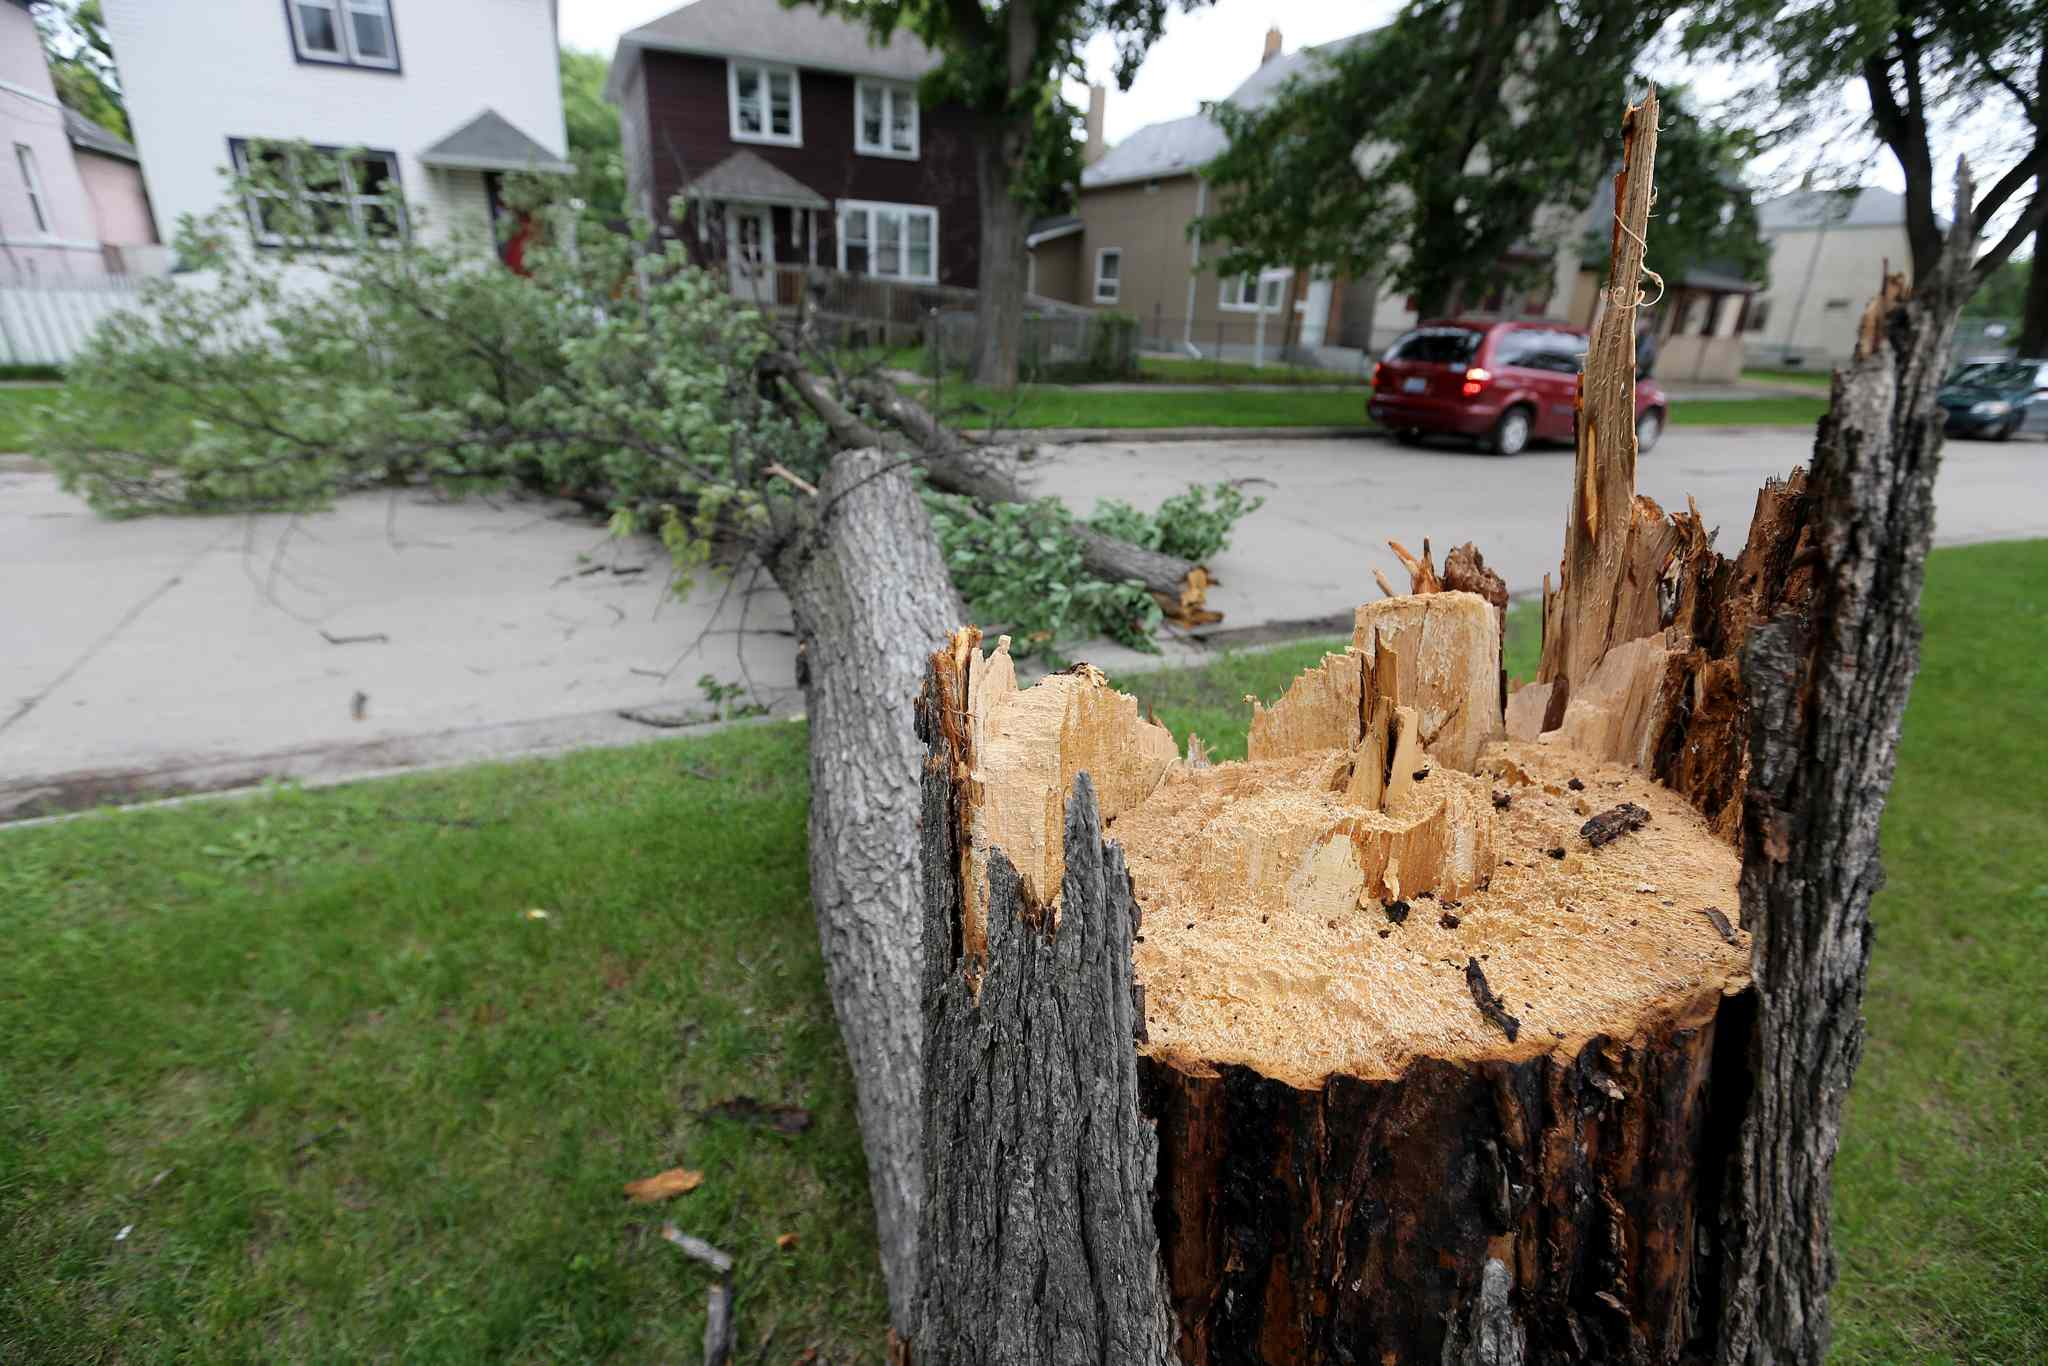 A large tree broken at the trunk lays across Pritchard Avenue between Charles and Aikens after strong winds overnight, Sunday, June 29, 2014.